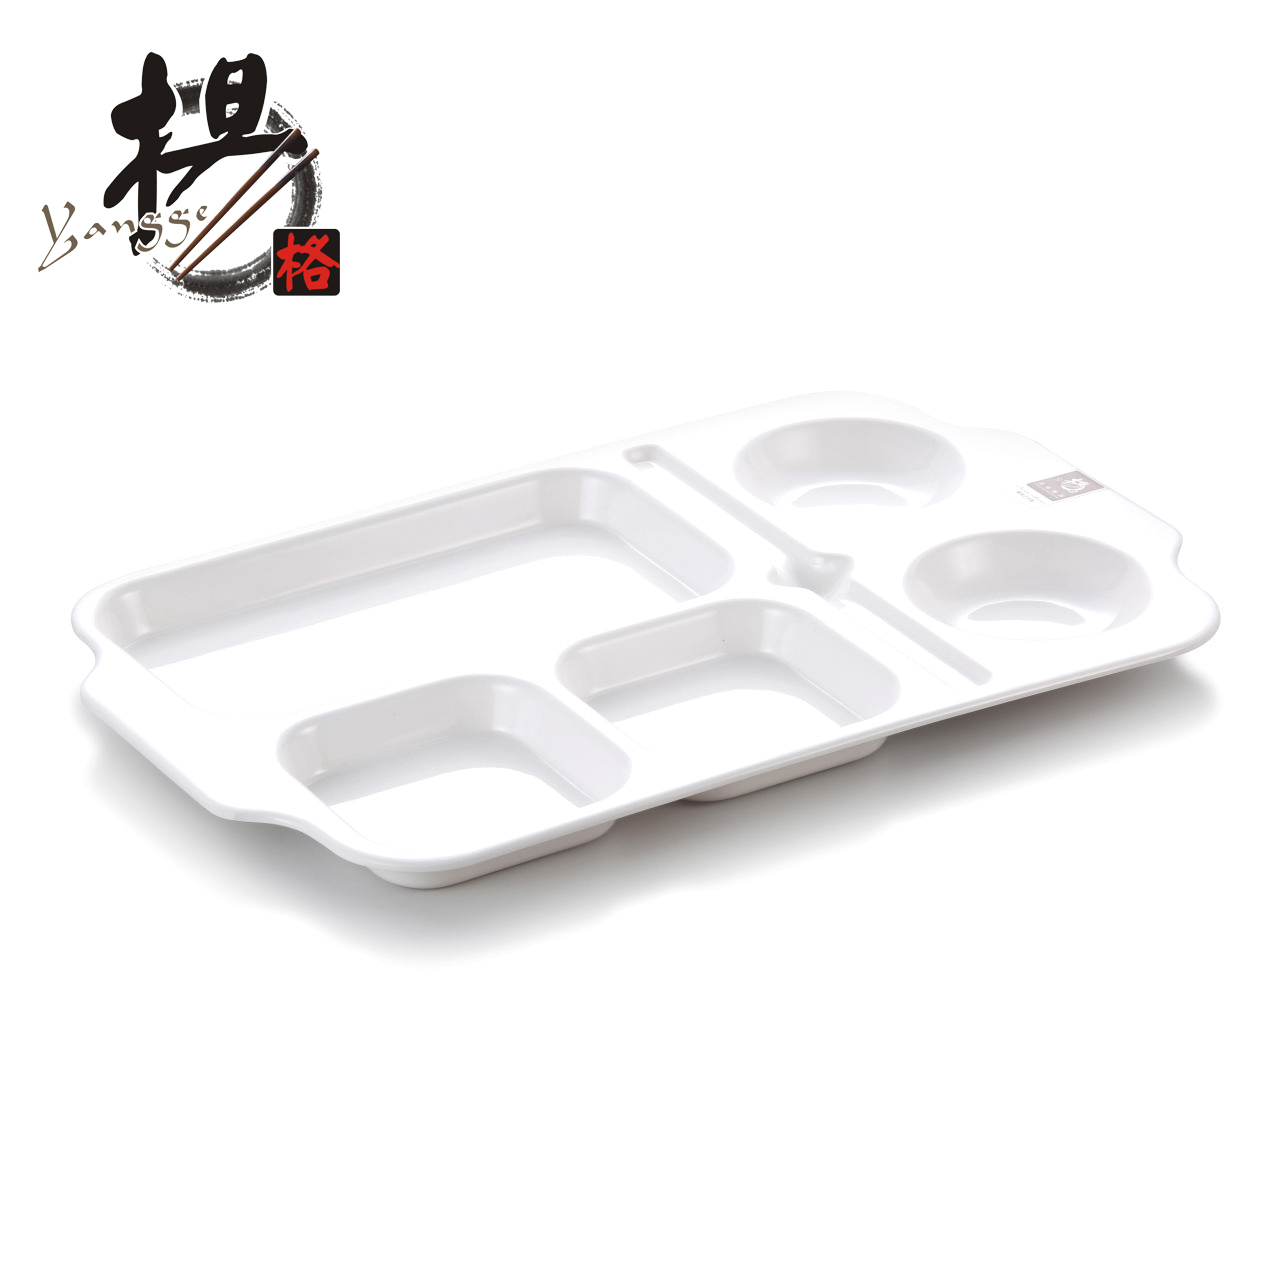 Wholesale Plastic Fast Food Serving Plates Melamine Divided Lunch Tray for School Canteen  sc 1 st  Alibaba & Wholesale Plastic Fast Food Serving Plates Melamine Divided Lunch ...